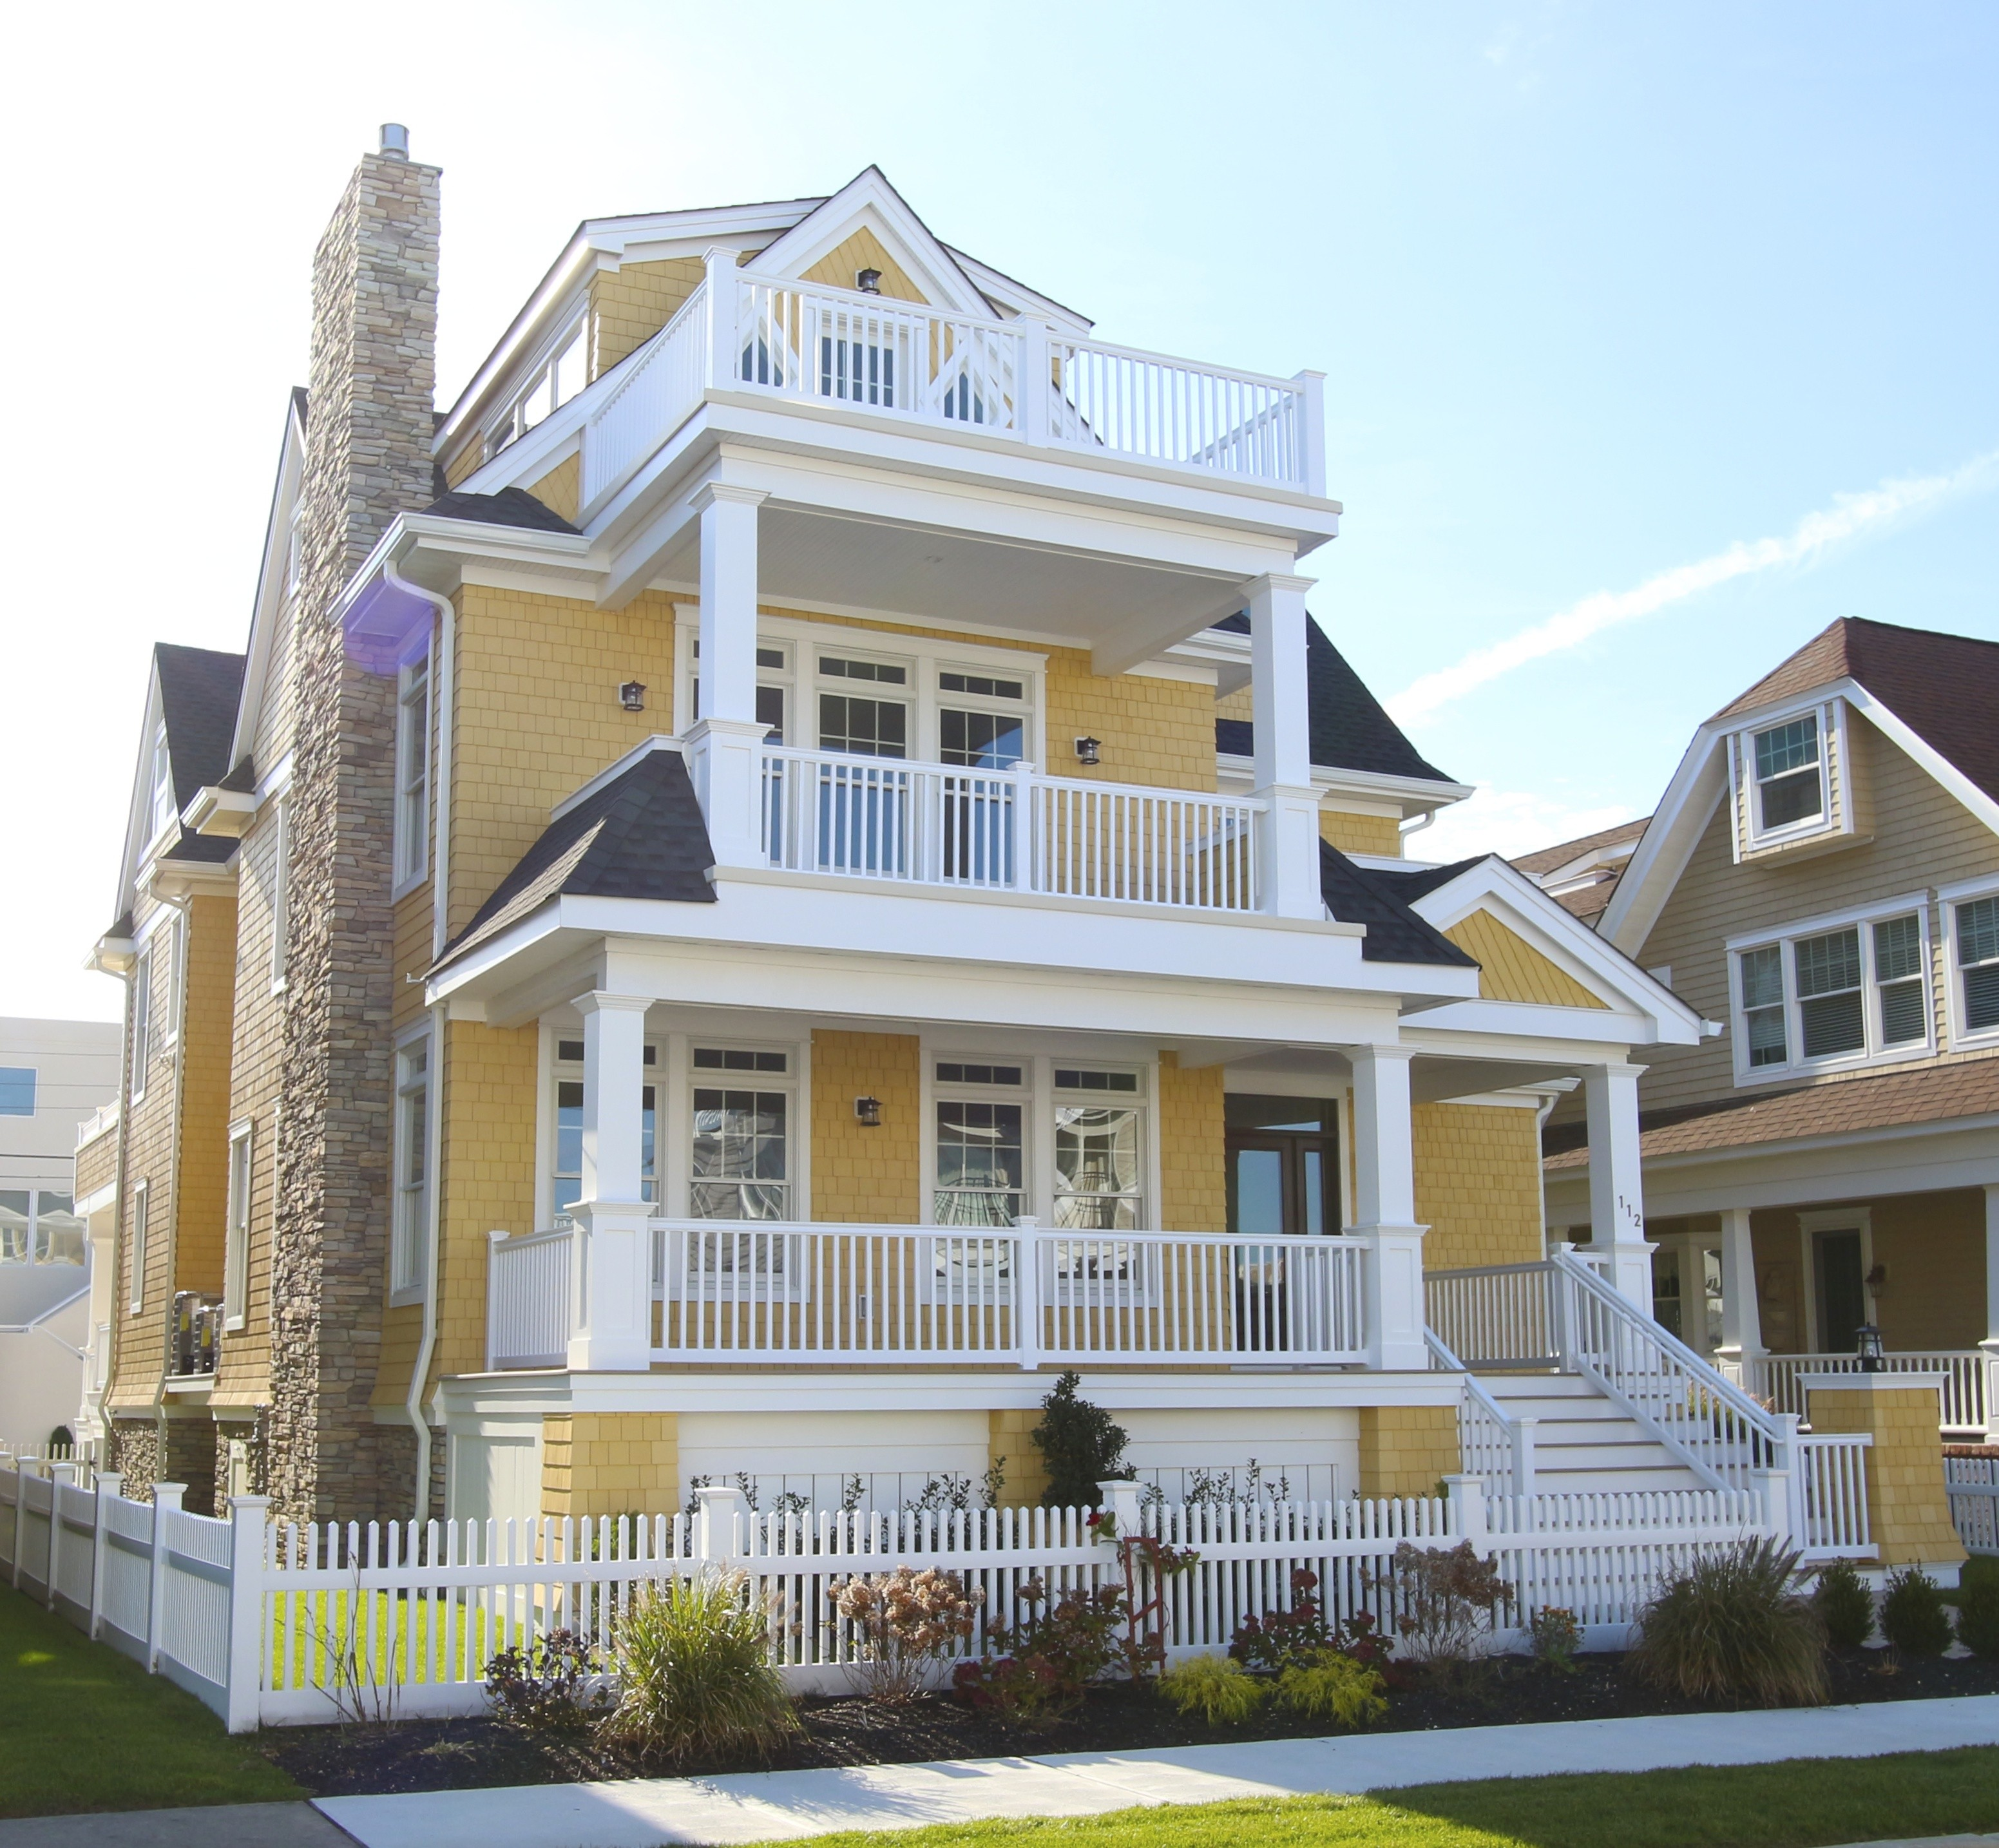 Maison unifamiliale pour l Vente à 112 S 15th Avenue 112 S 15th Avenue BEACHBLOCK NEW CONSTRUCTION Longport, New Jersey 08403 États-Unis